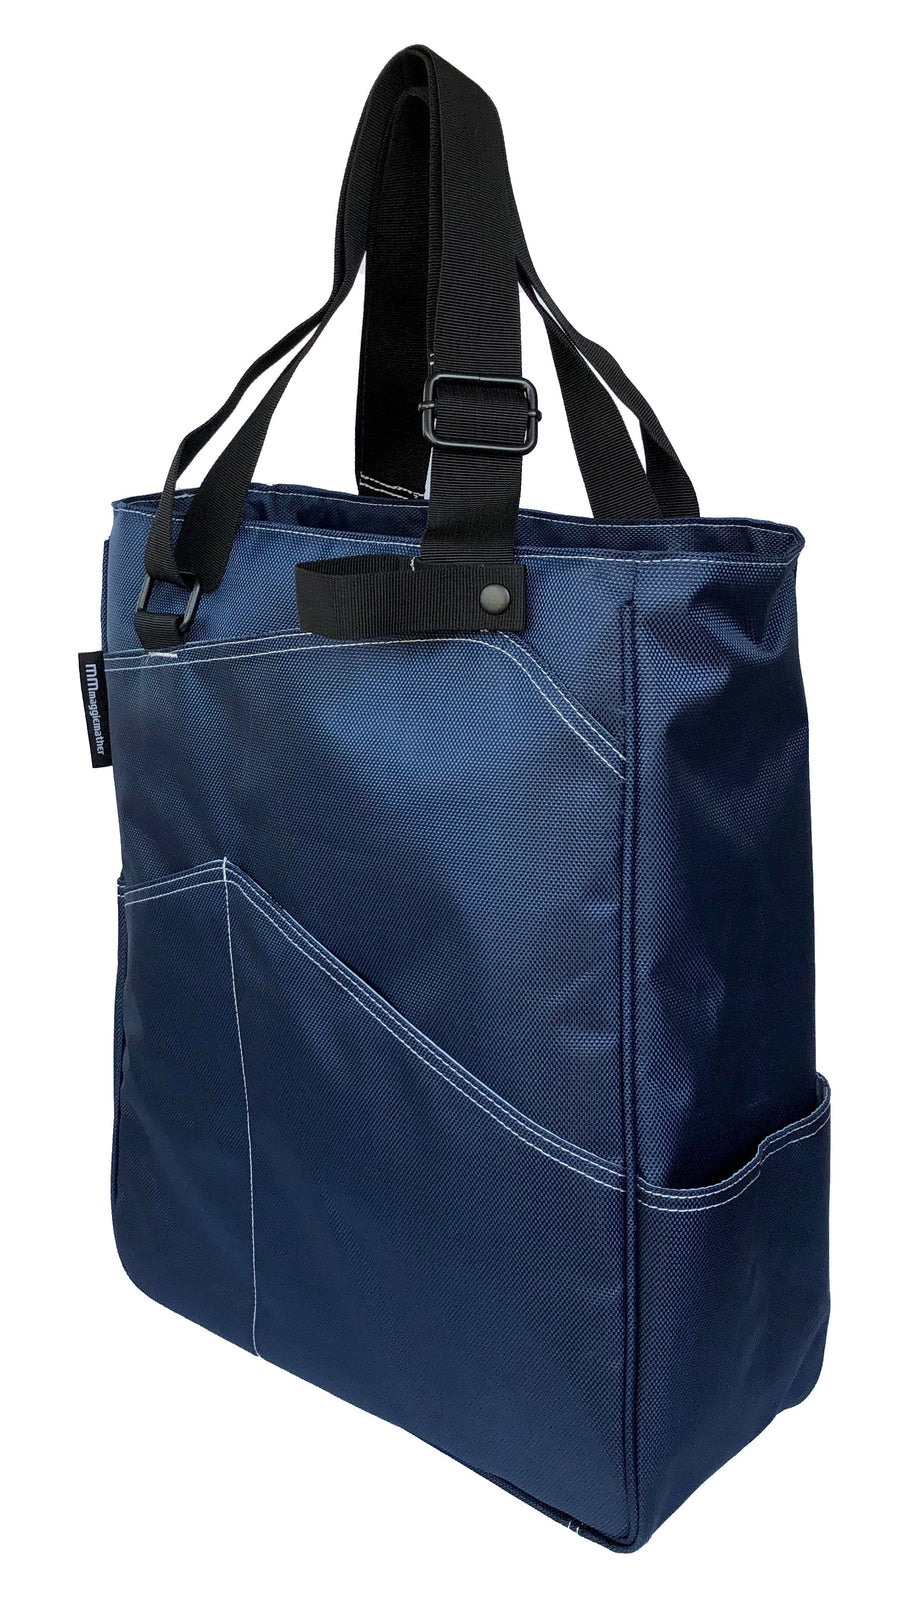 Tennis Tote in Navy